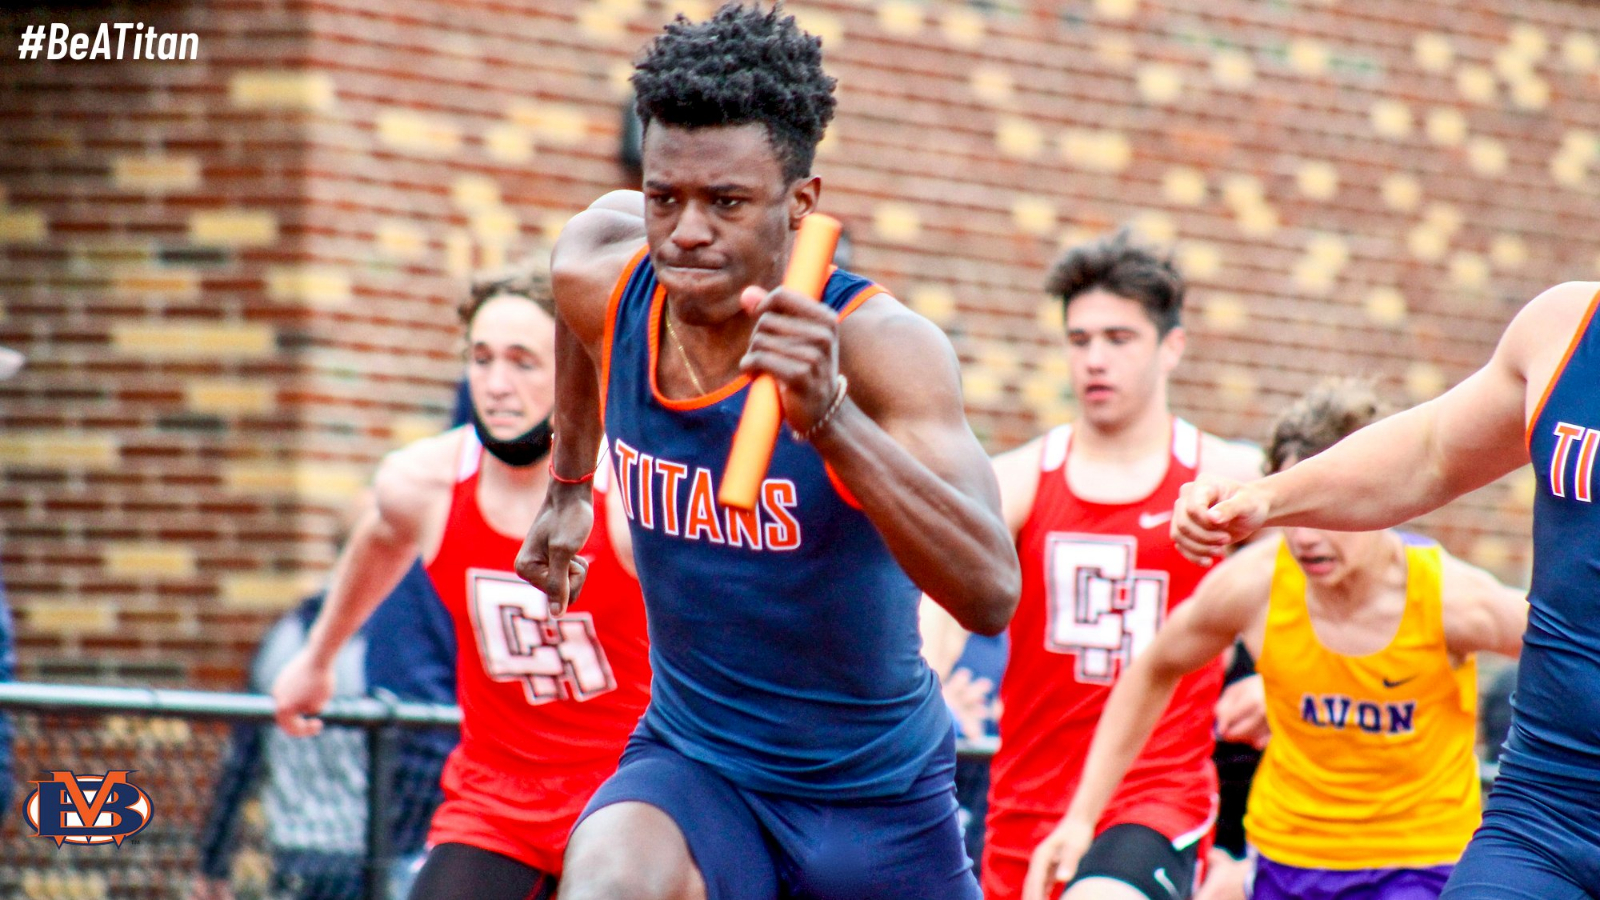 11 Firsts for Berea-Midpark at Fairview Warrior Relays